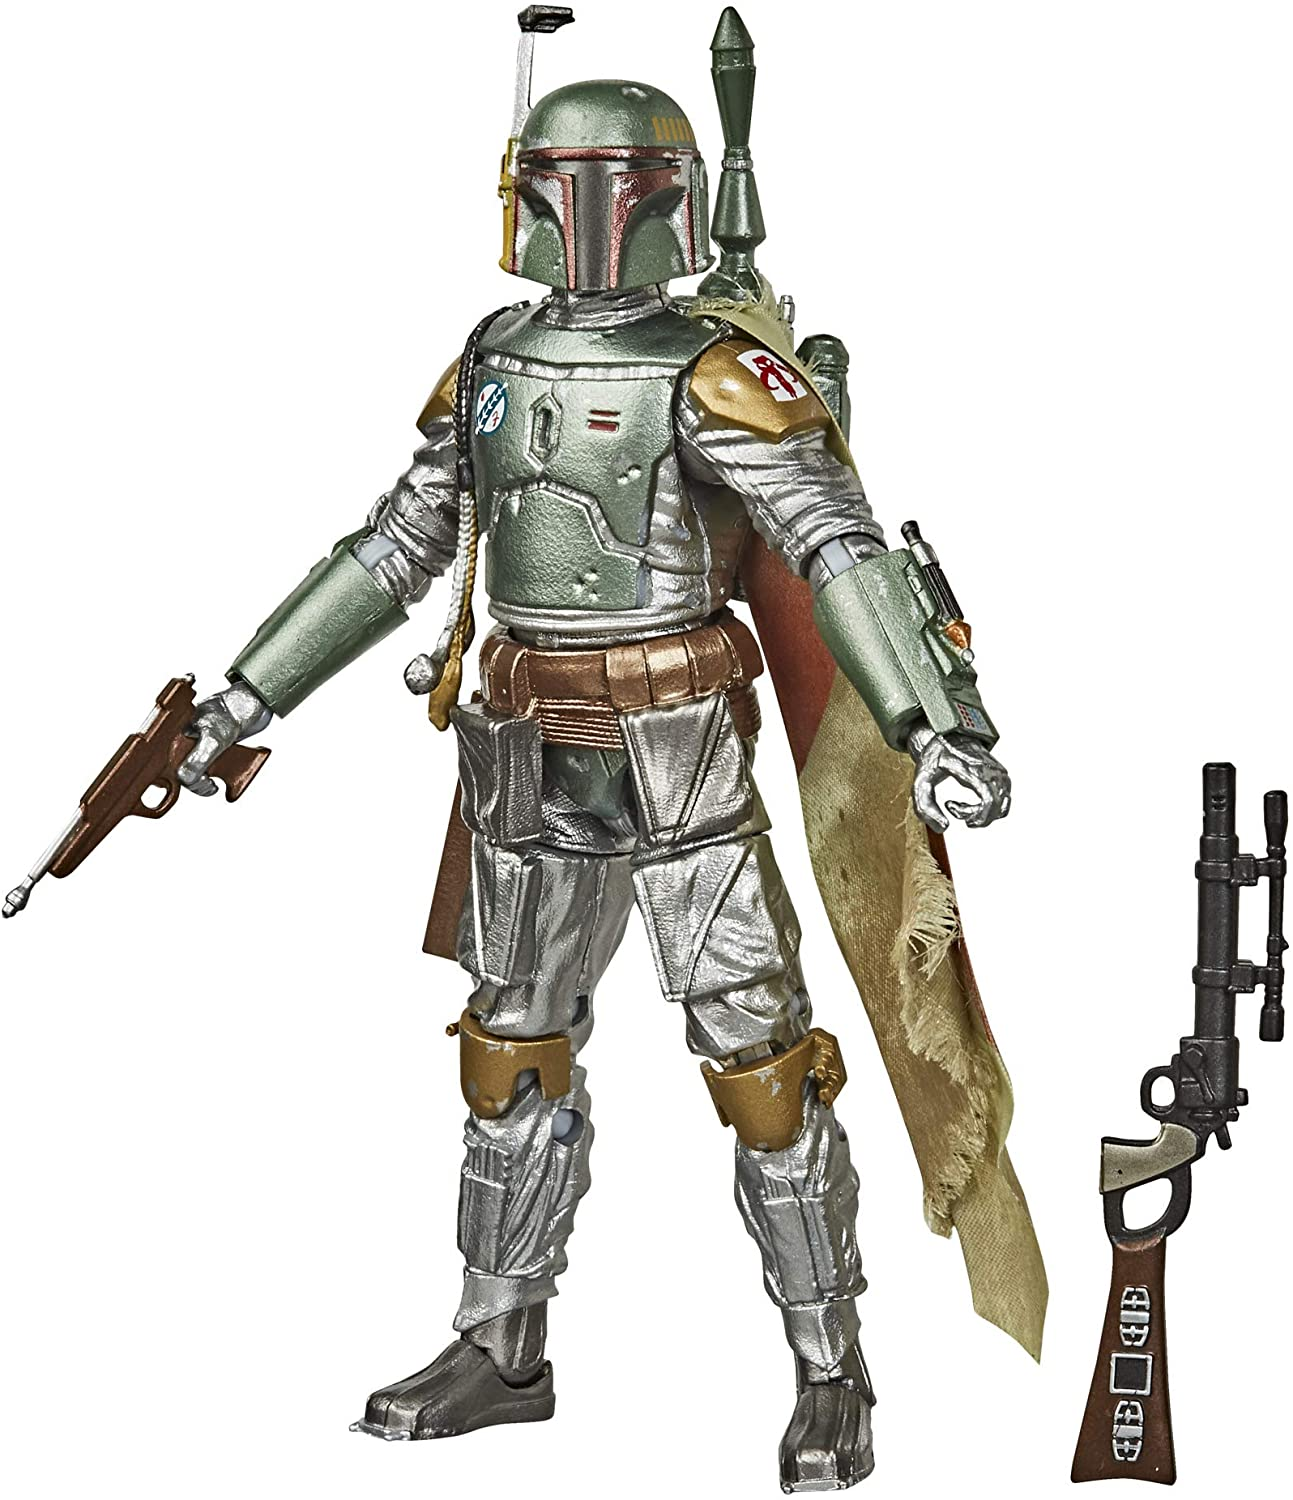 Star Wars The Black Series Carbonized Collection Boba Fett Toy Figure